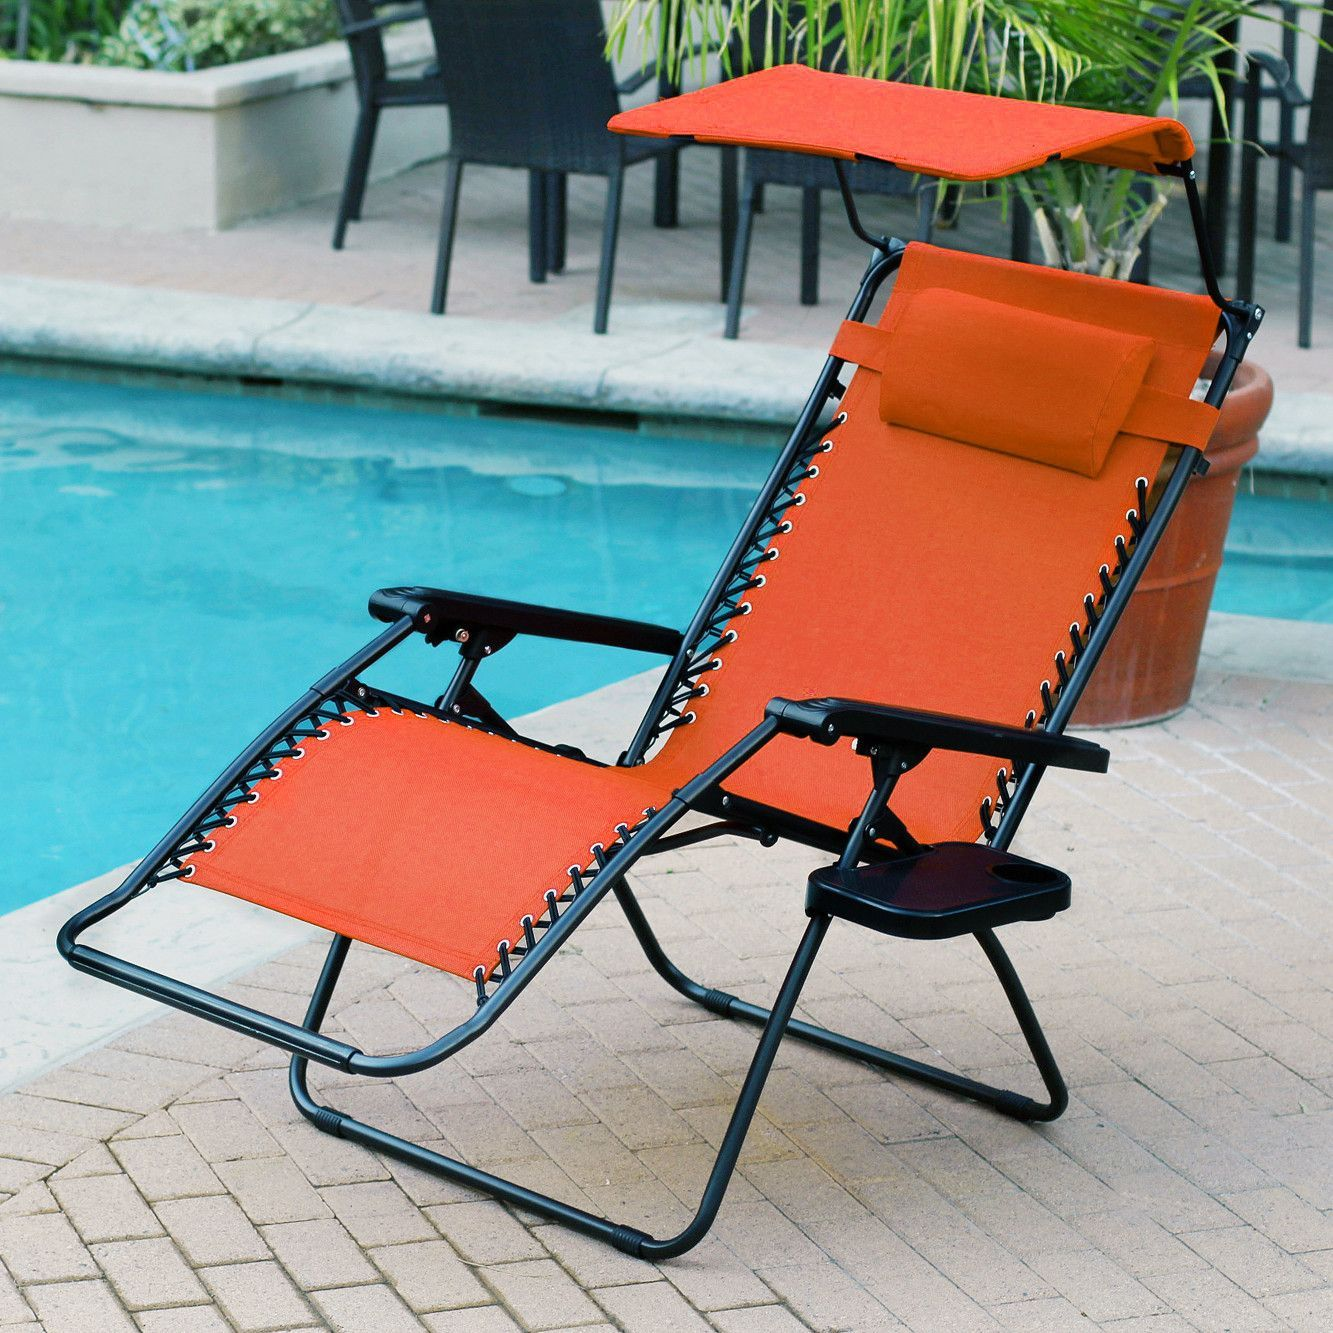 Oversized Zero Gravity Chair Chair, Lawn chairs, Outdoor